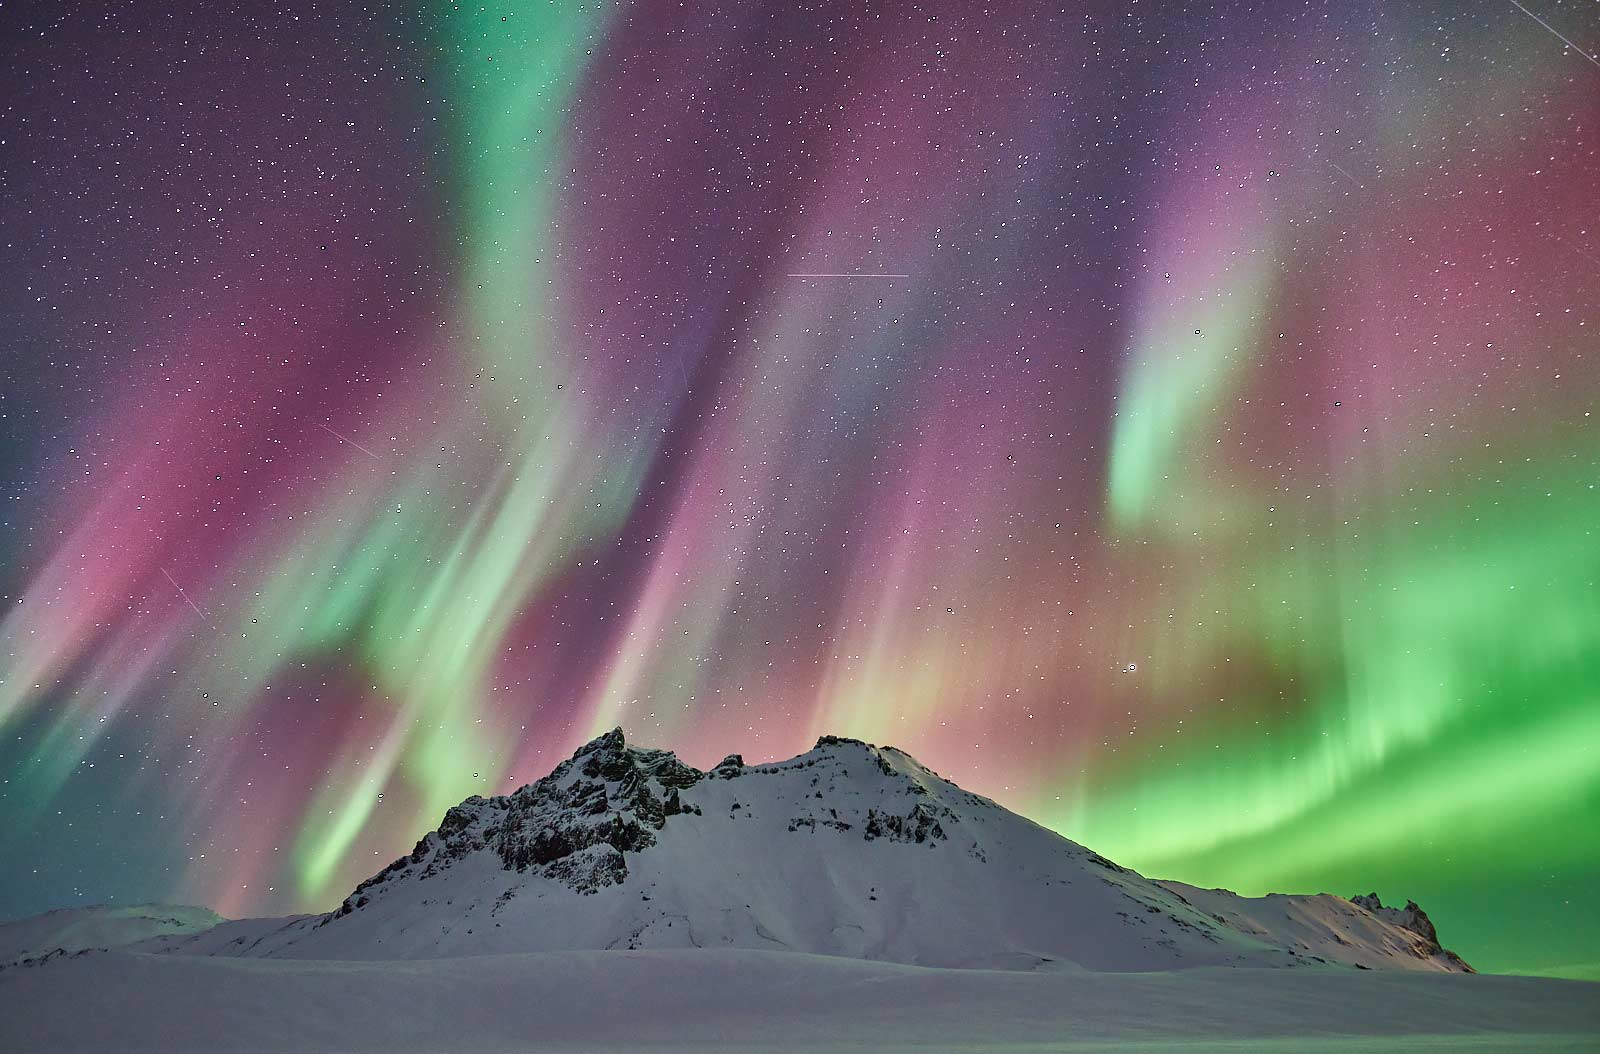 Northern Lights, Aurora Borealis, Winter, Iceland, Mountain, Snow, Ice, Night